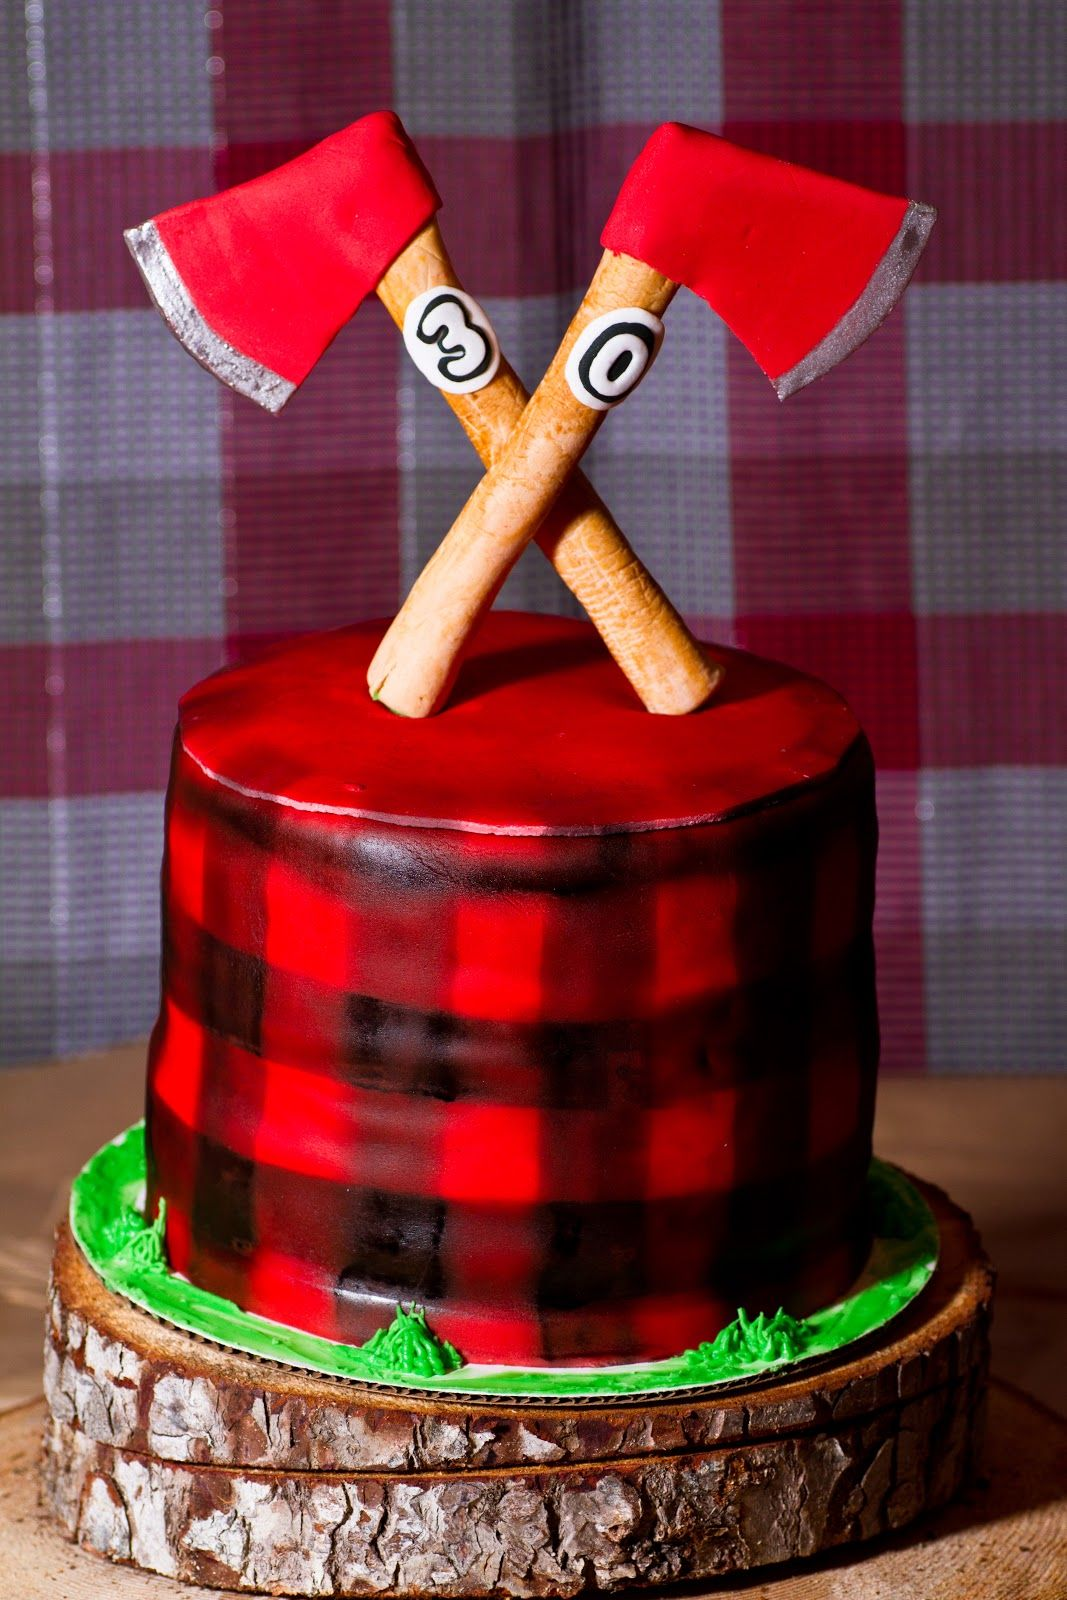 Would Be Fun To Have Some Kind Of Logging Themed Birthday